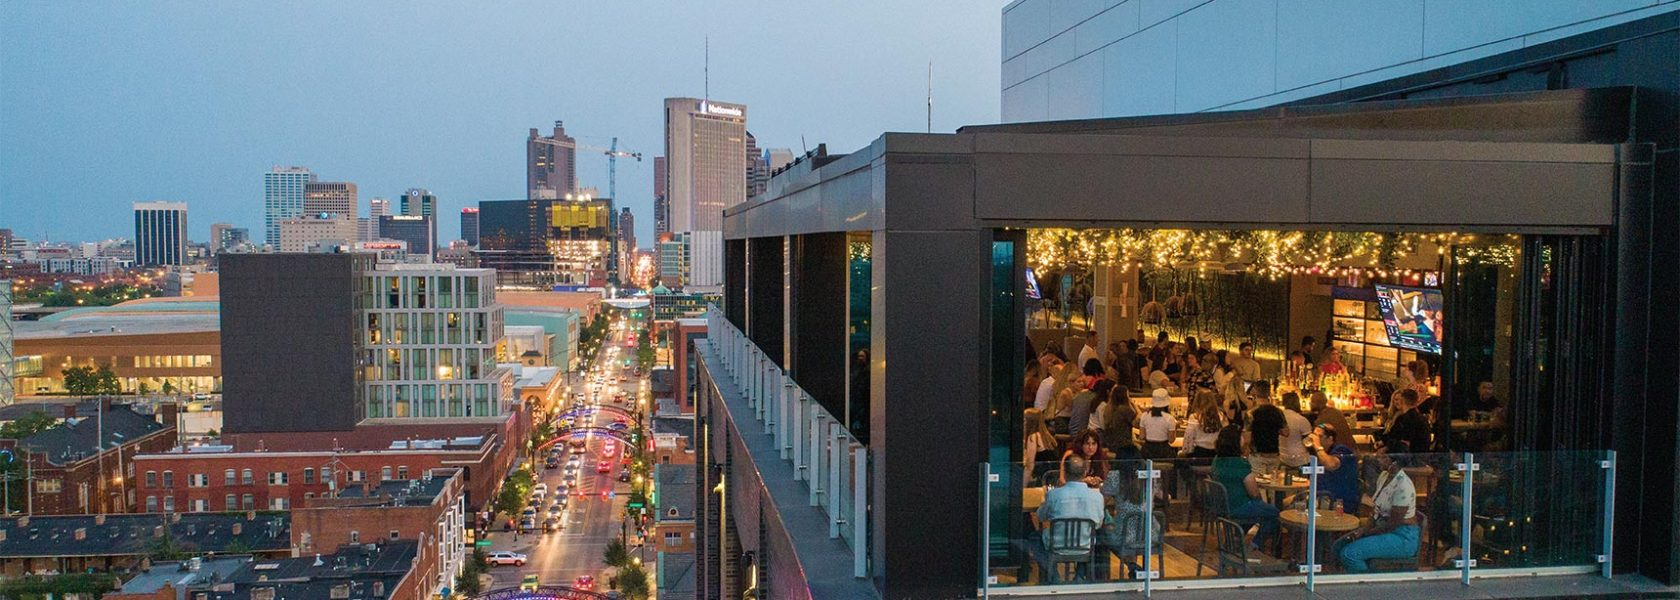 Drone view showing Lincoln Social's rooftop with guests enjoying view south on High Street toward downtown Columbus